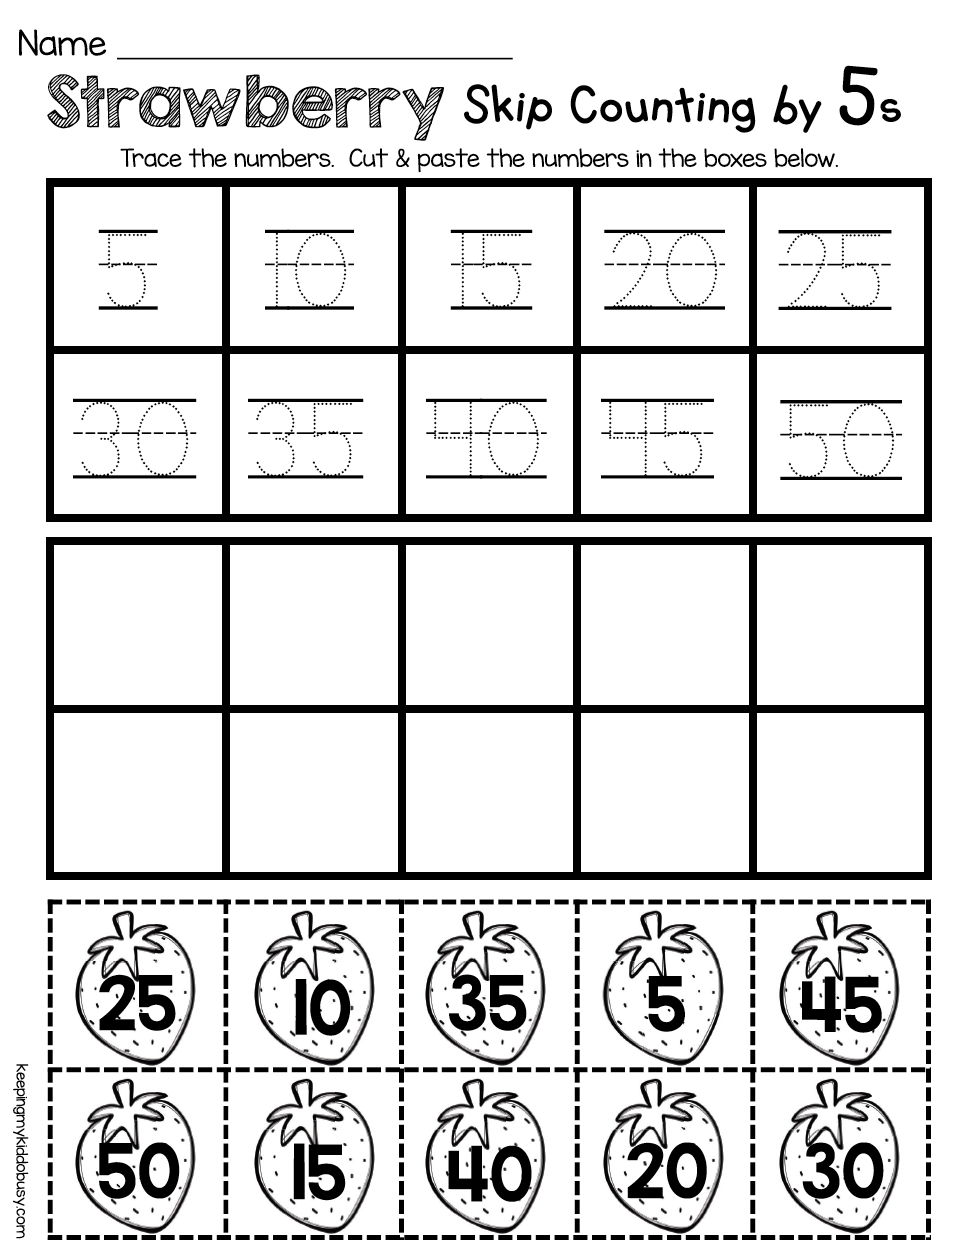 Kindergarten Counting By Fives Math And Reading Worksheets For Spring No Prep Activitie Counting Kindergarten Reading Worksheets Kindergarten Math Counting [ 1256 x 964 Pixel ]